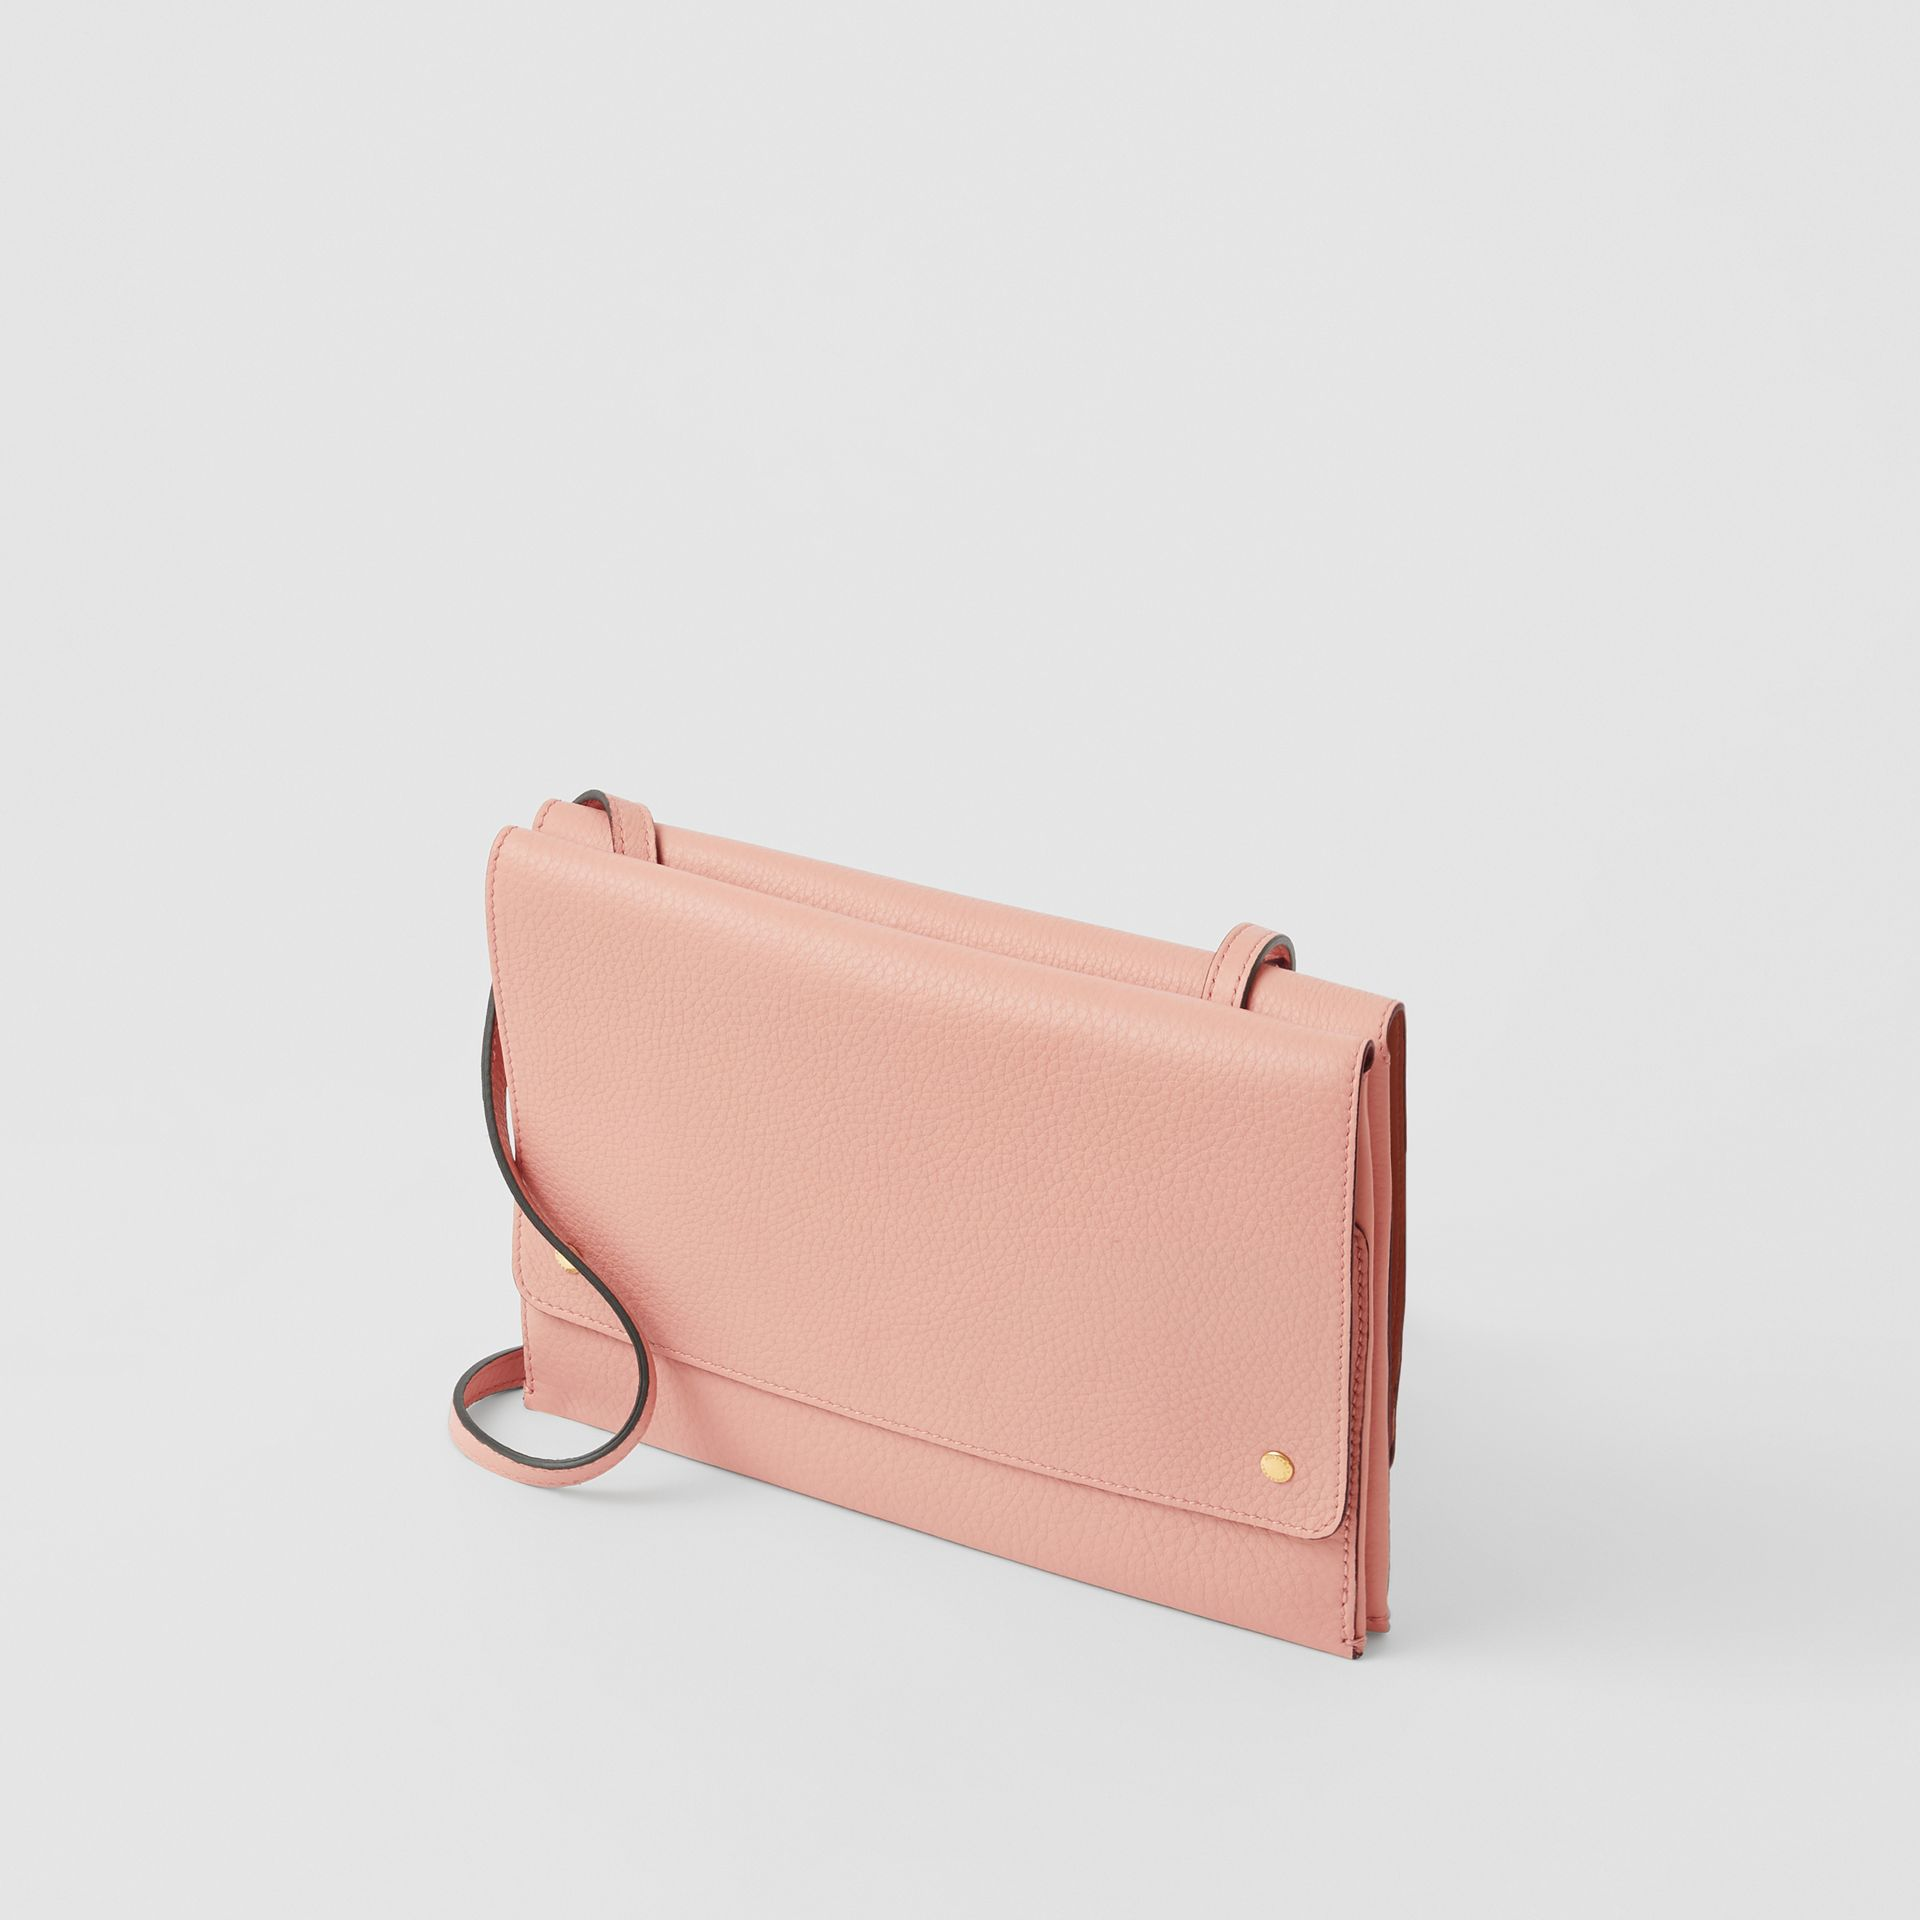 Leather Envelope Crossbody Bag in Ash Rose - Women | Burberry - gallery image 4